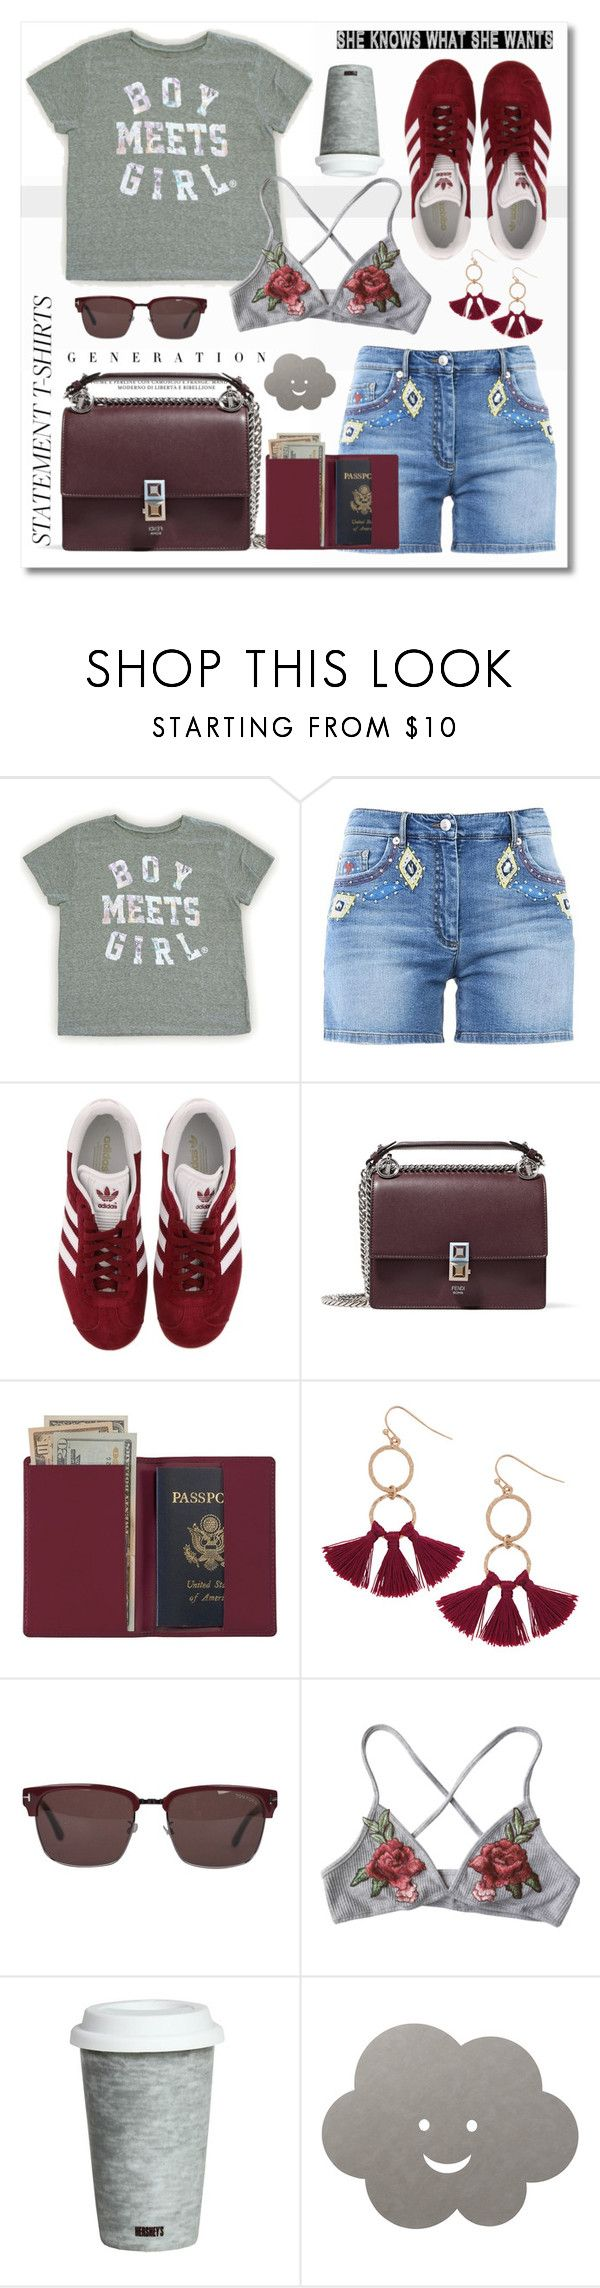 """Say It Loud: Slogan T-Shirts"" by esch103 ❤ liked on Polyvore featuring Moschino, adidas, Fendi, Royce Leather, Humble Chic, Tom Ford, Fitz & Floyd, LIND DNA and slogantshirts"